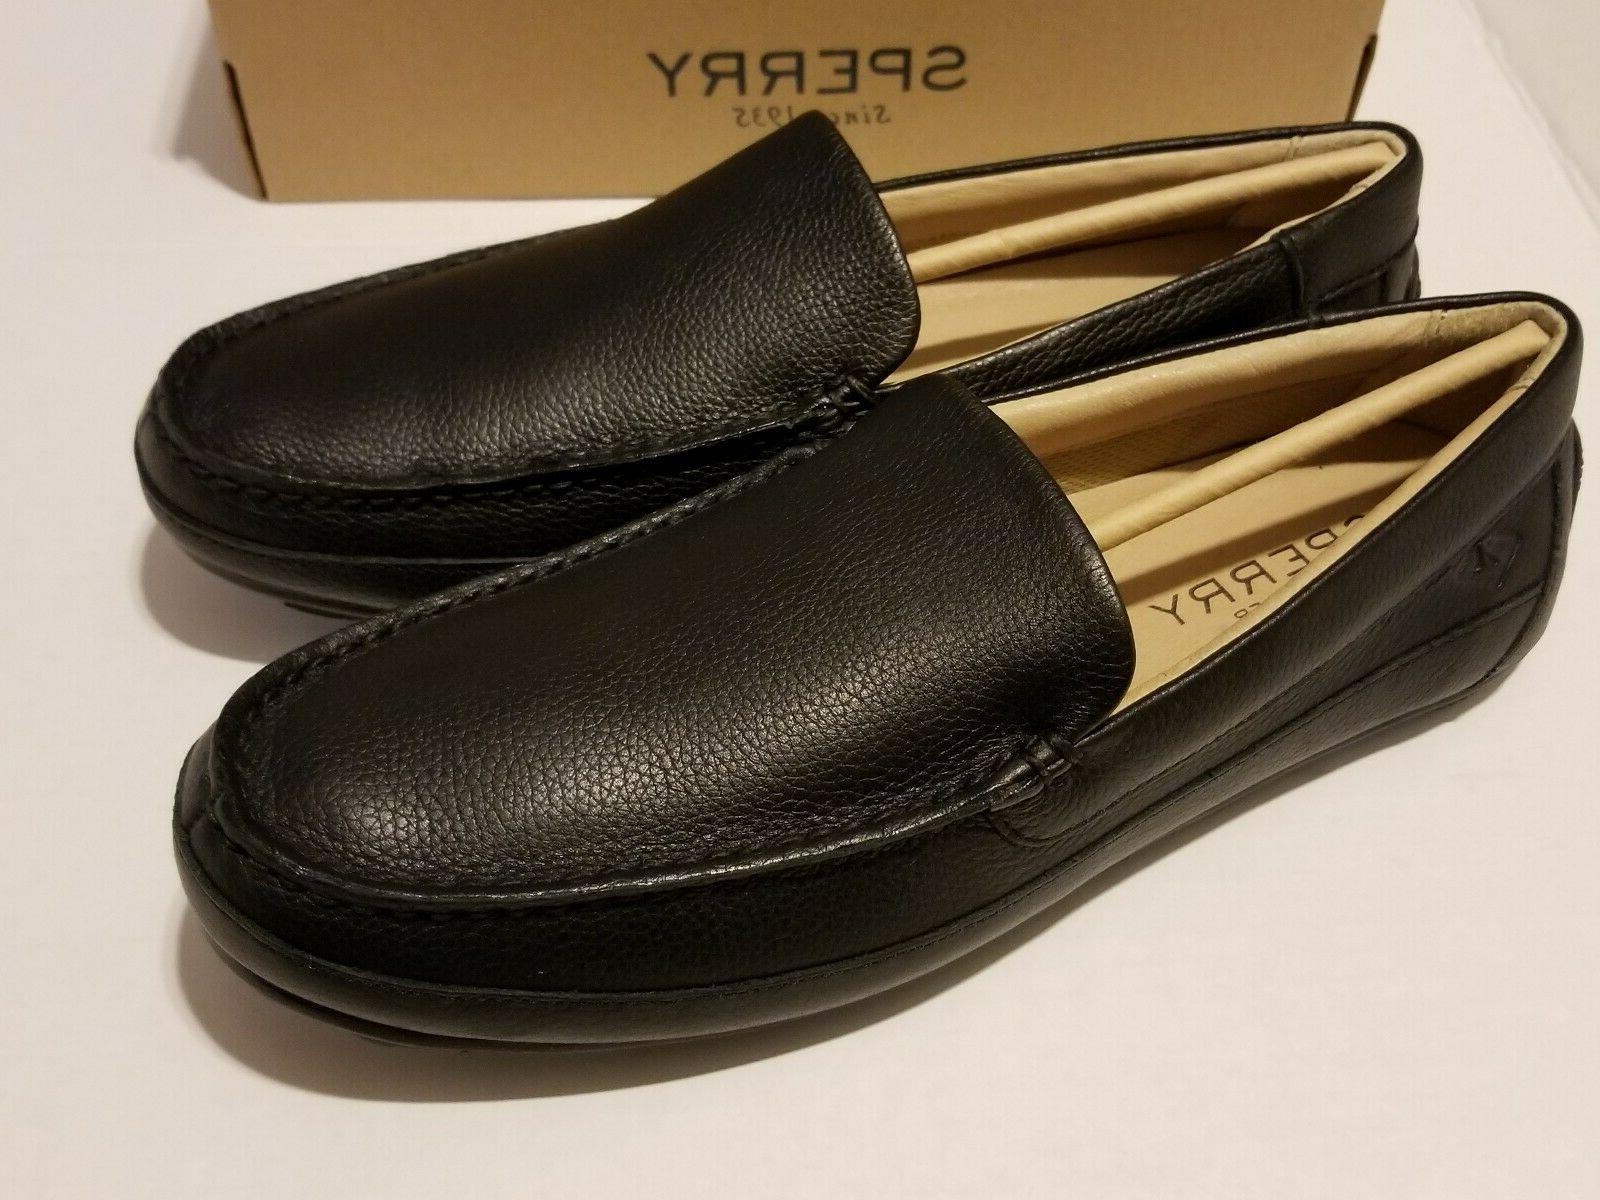 Sperry Top-Sider Venetian Black Leather loafers Sizes